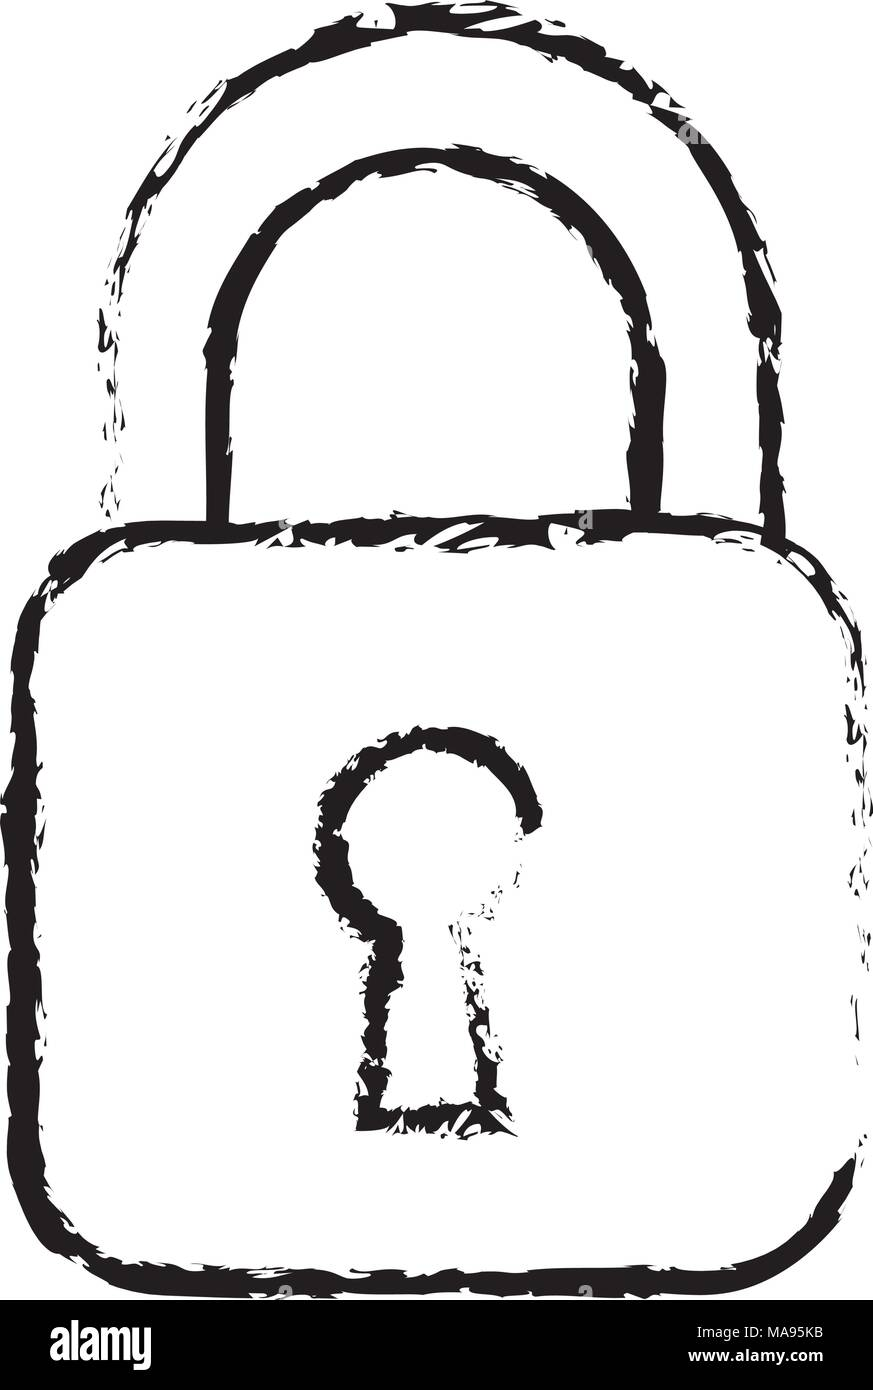 security padlock business technology protection image - Stock Image